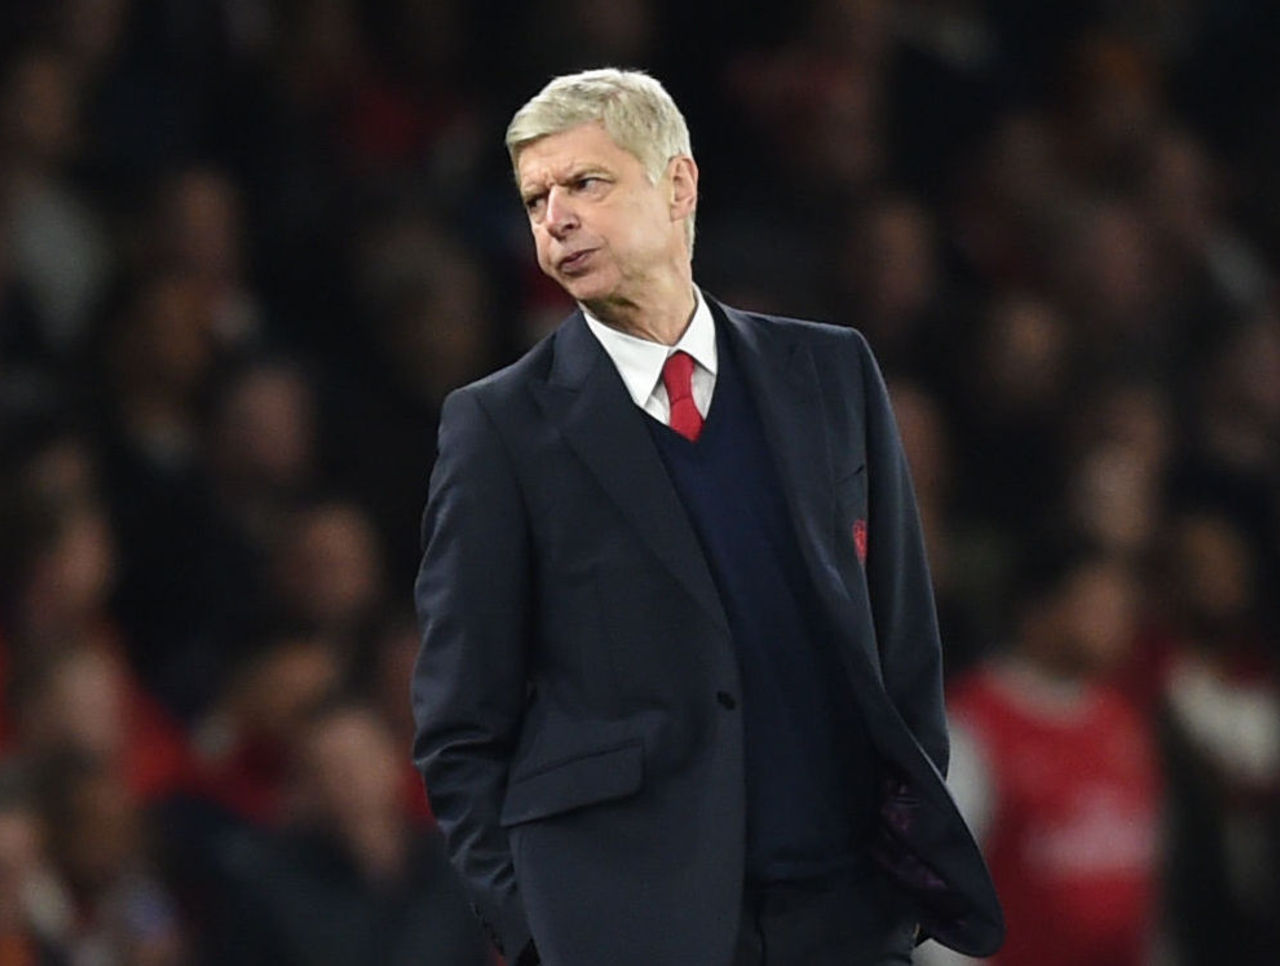 Wenger says that Arsenal criticism is excessive